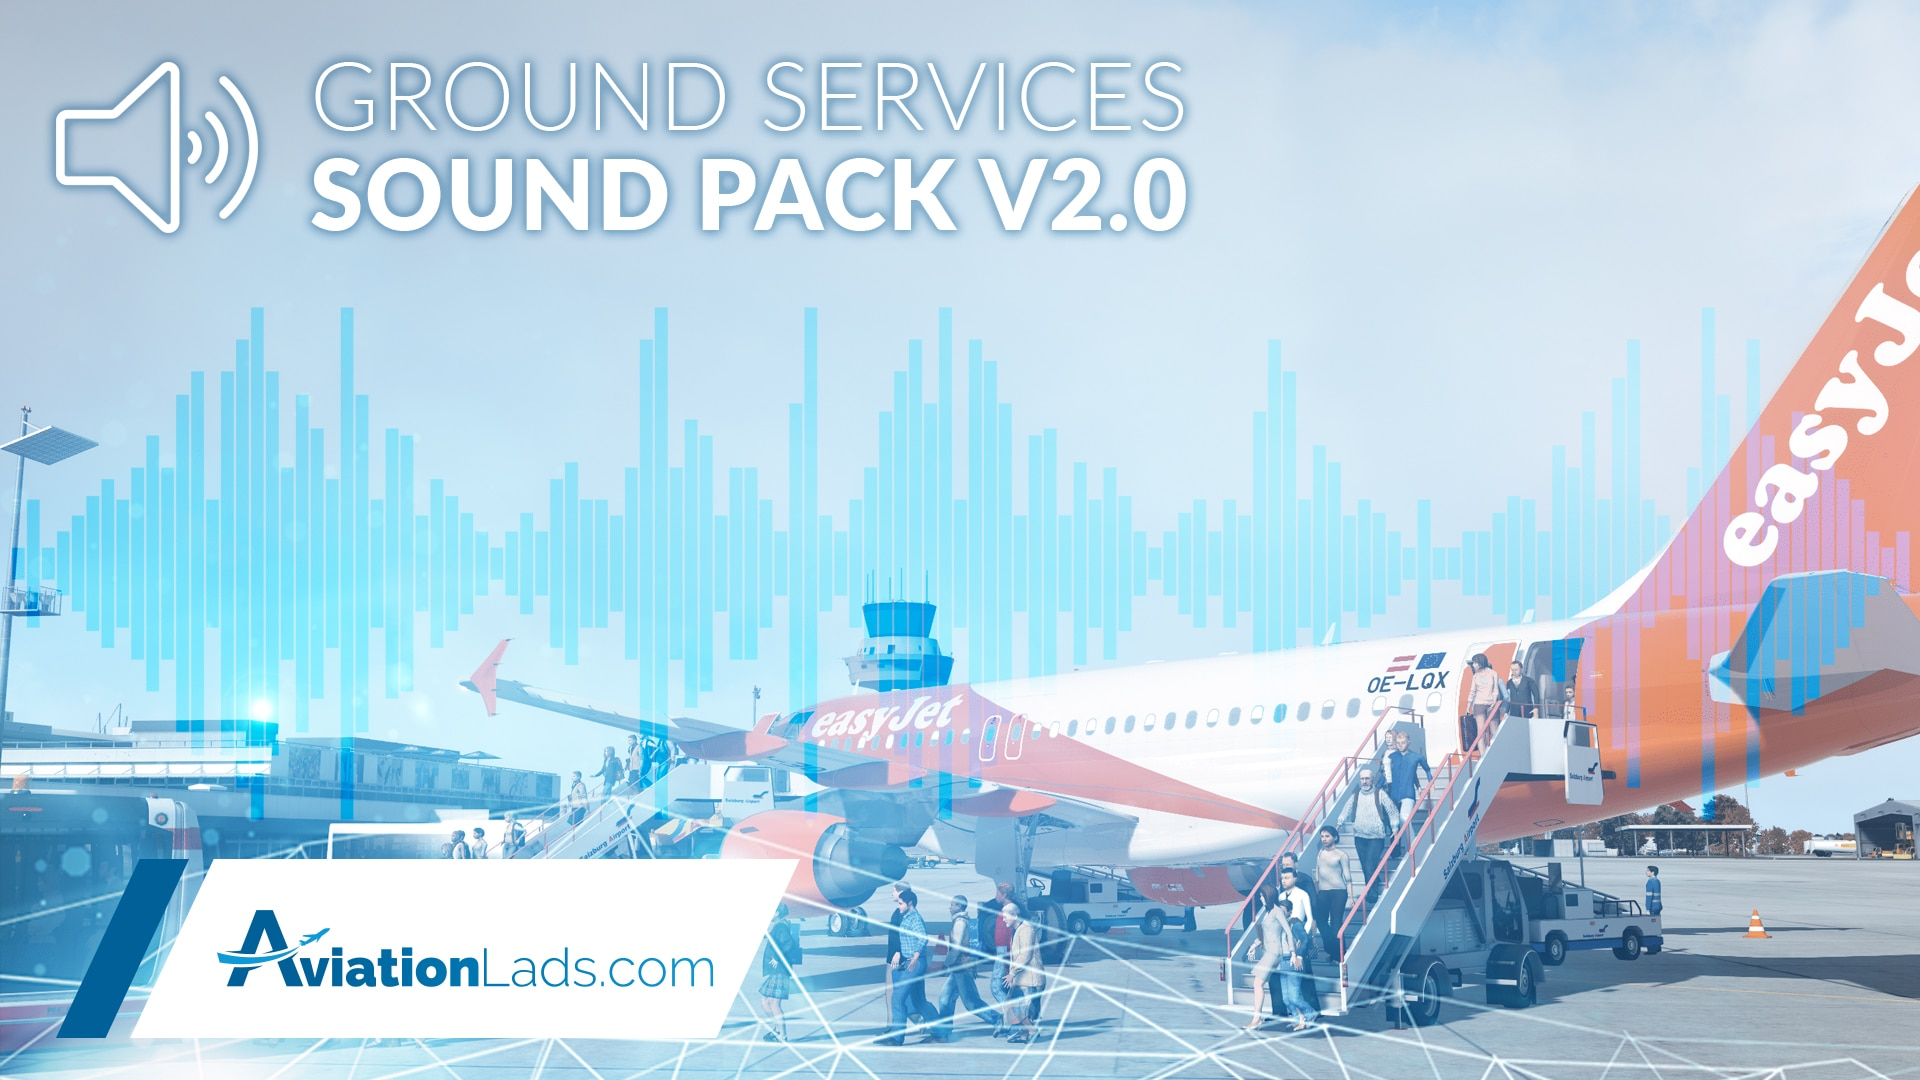 [RELEASE] Ground Services Soundpack